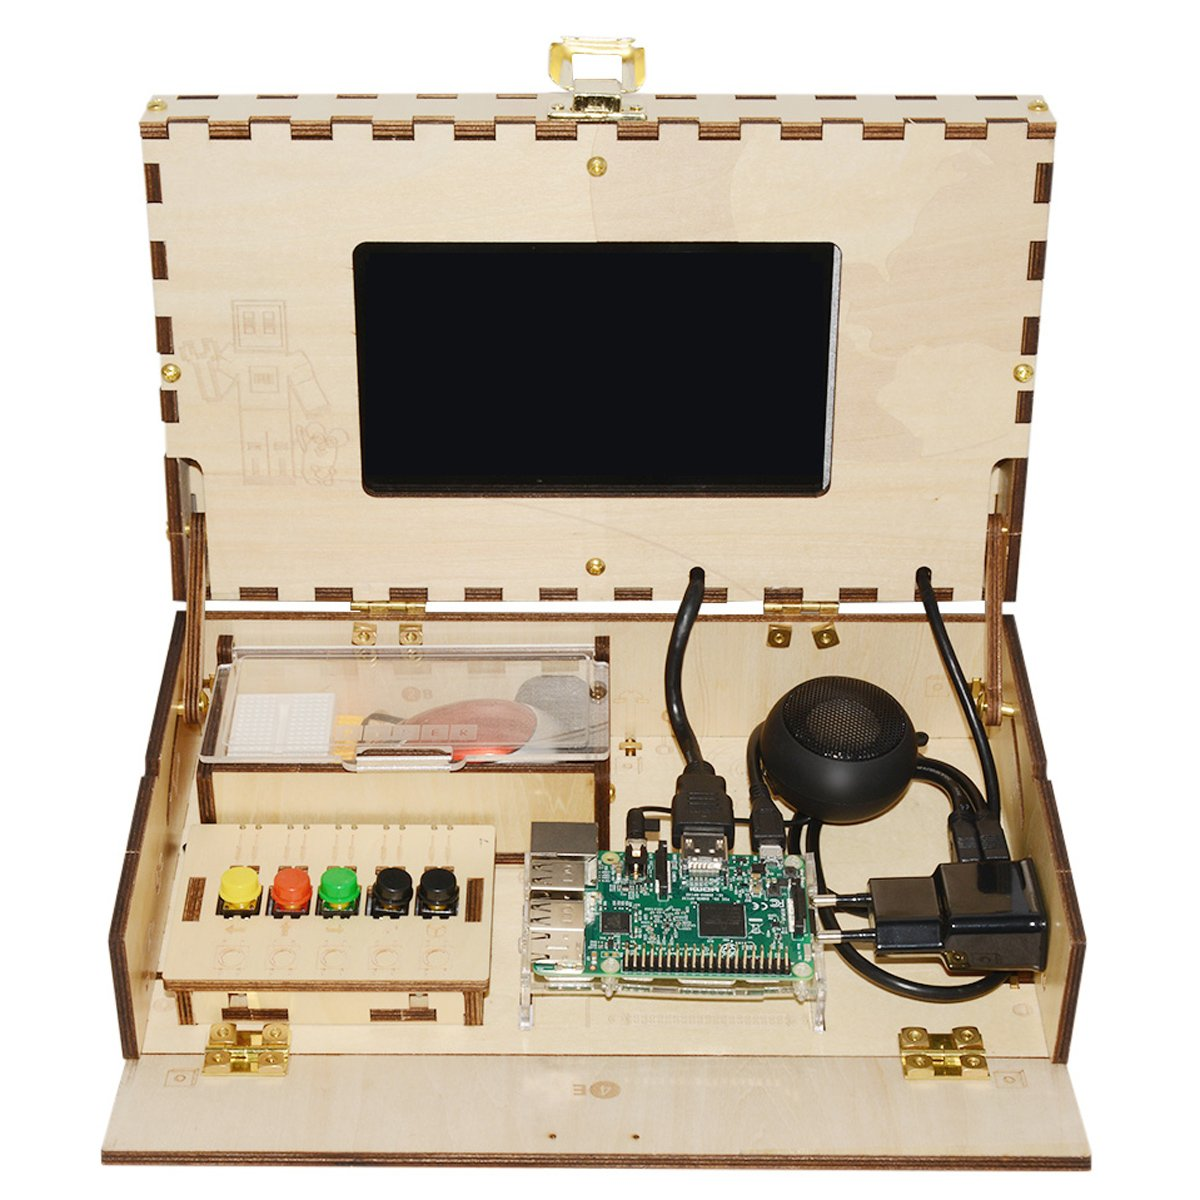 DIY Computer Kit for Kids STEM and Coding Training Toy